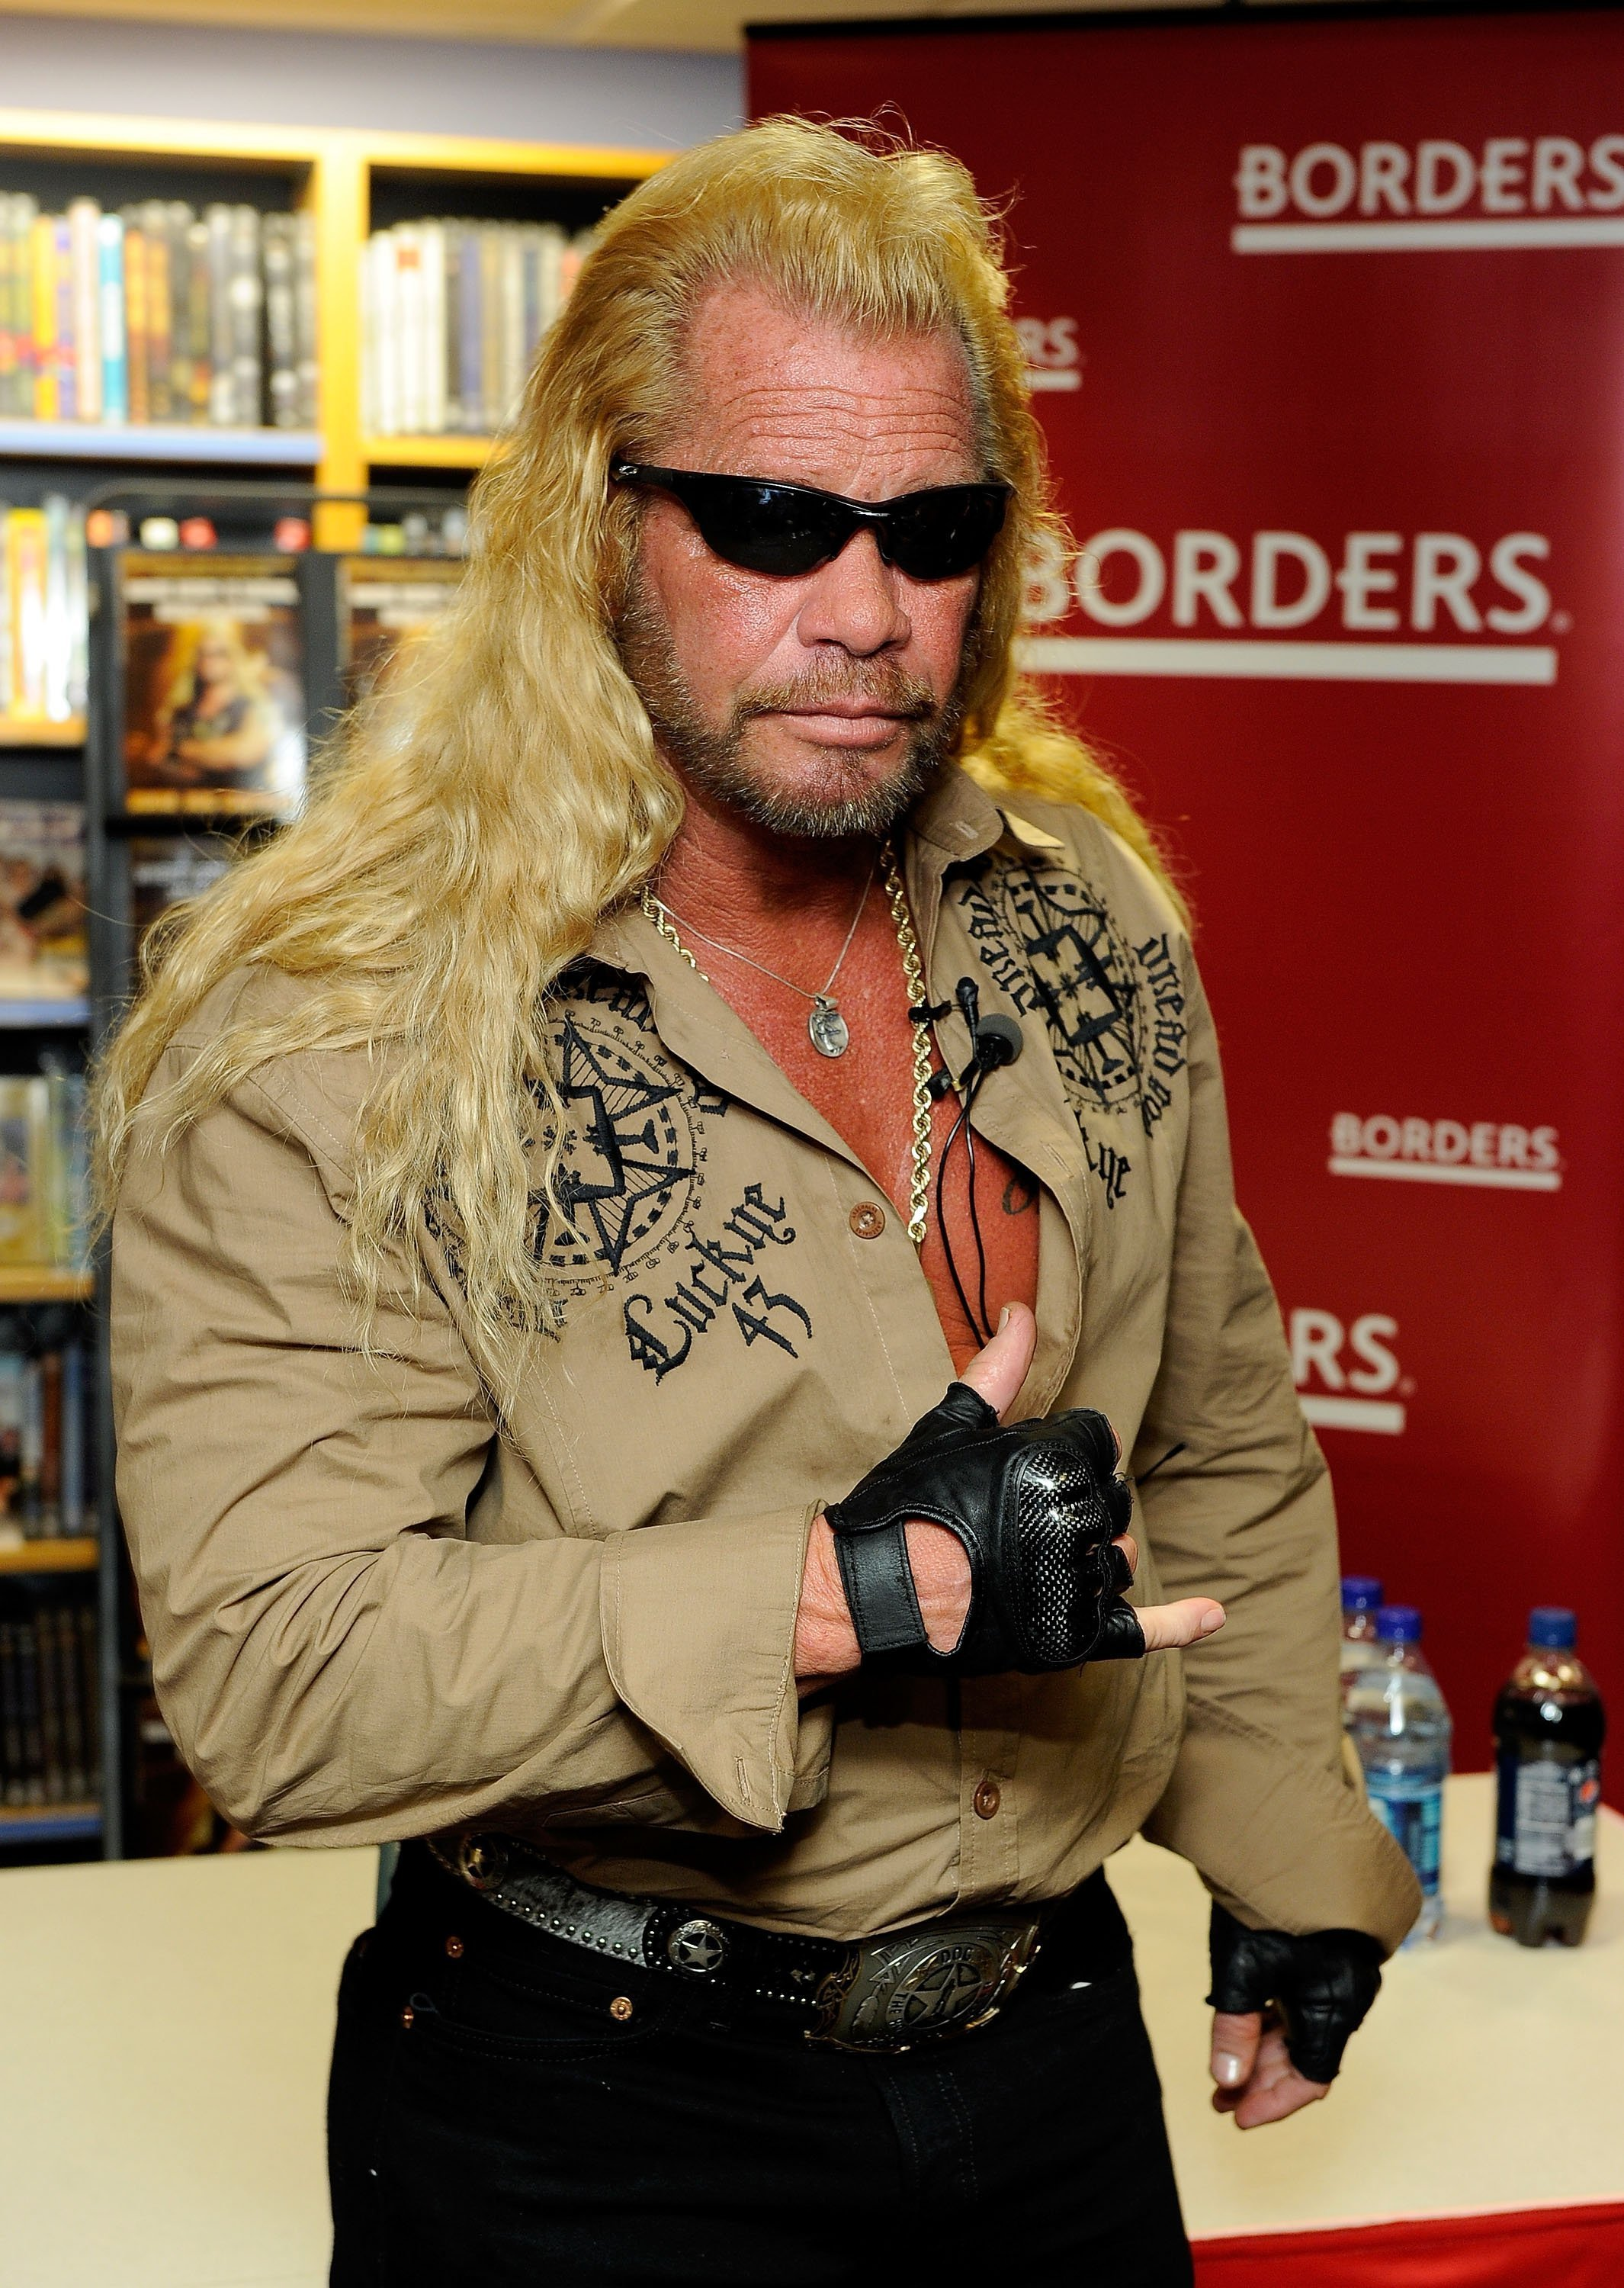 Duane Chapman at his book promotion event in New York City on March 19, 2010 | Photo: Getty Images